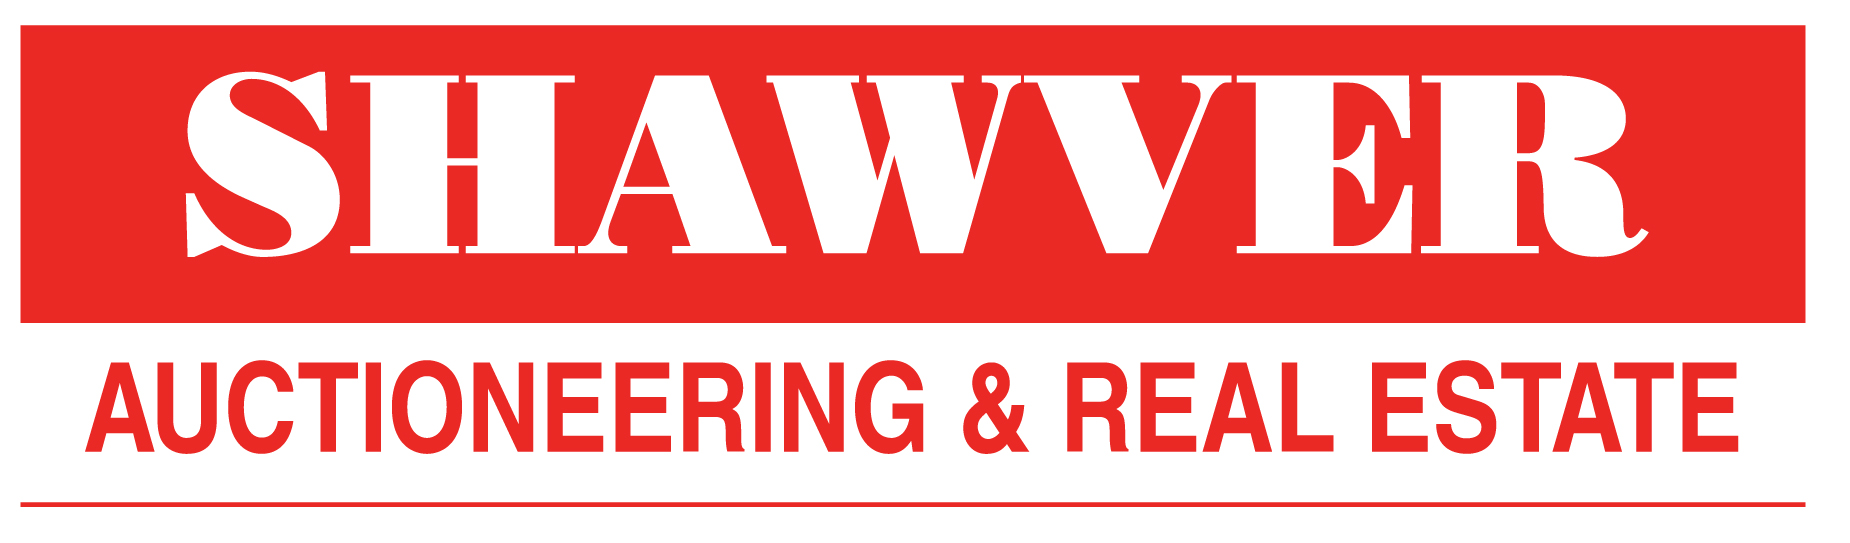 Shawver Auctioneering and Real Estate